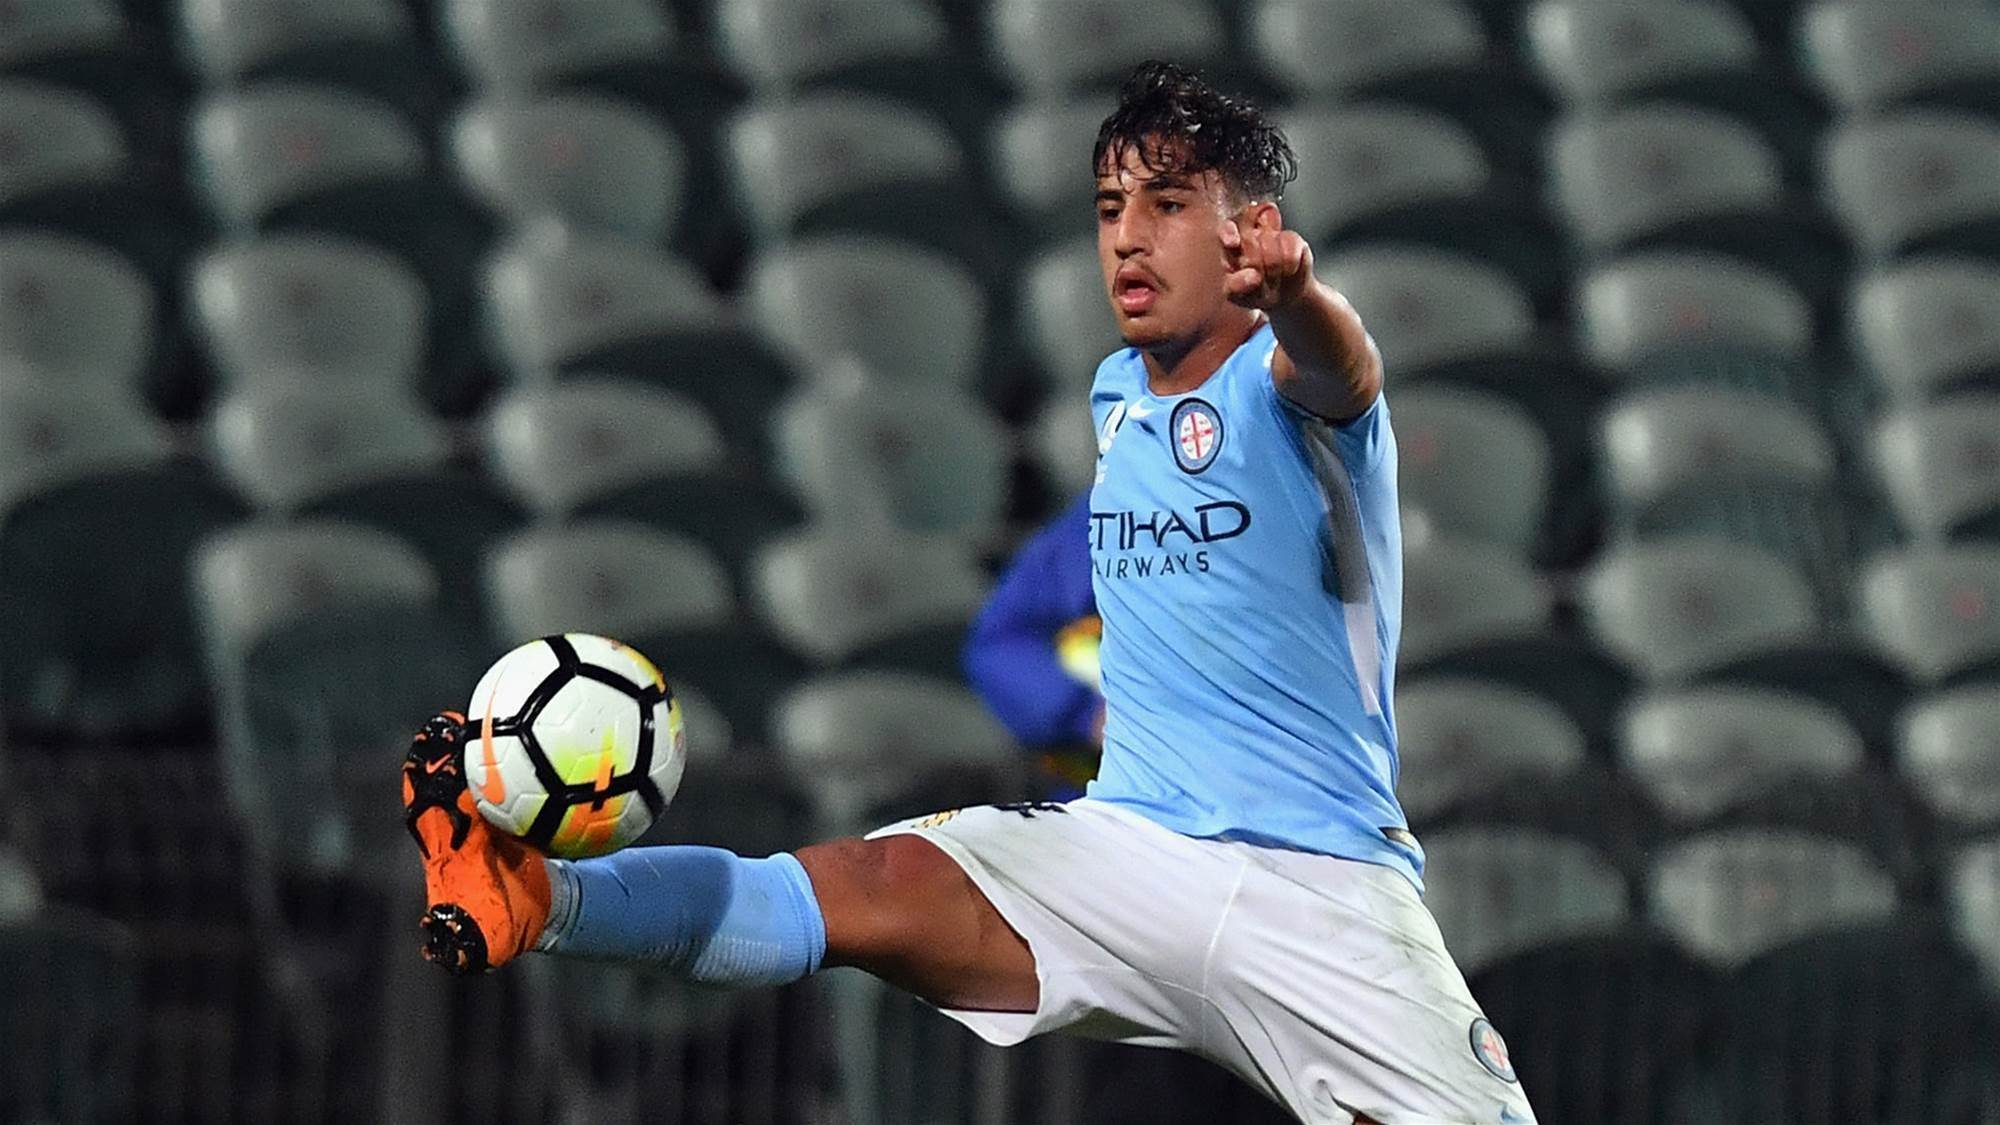 City boss: Arzani can be an Australian icon